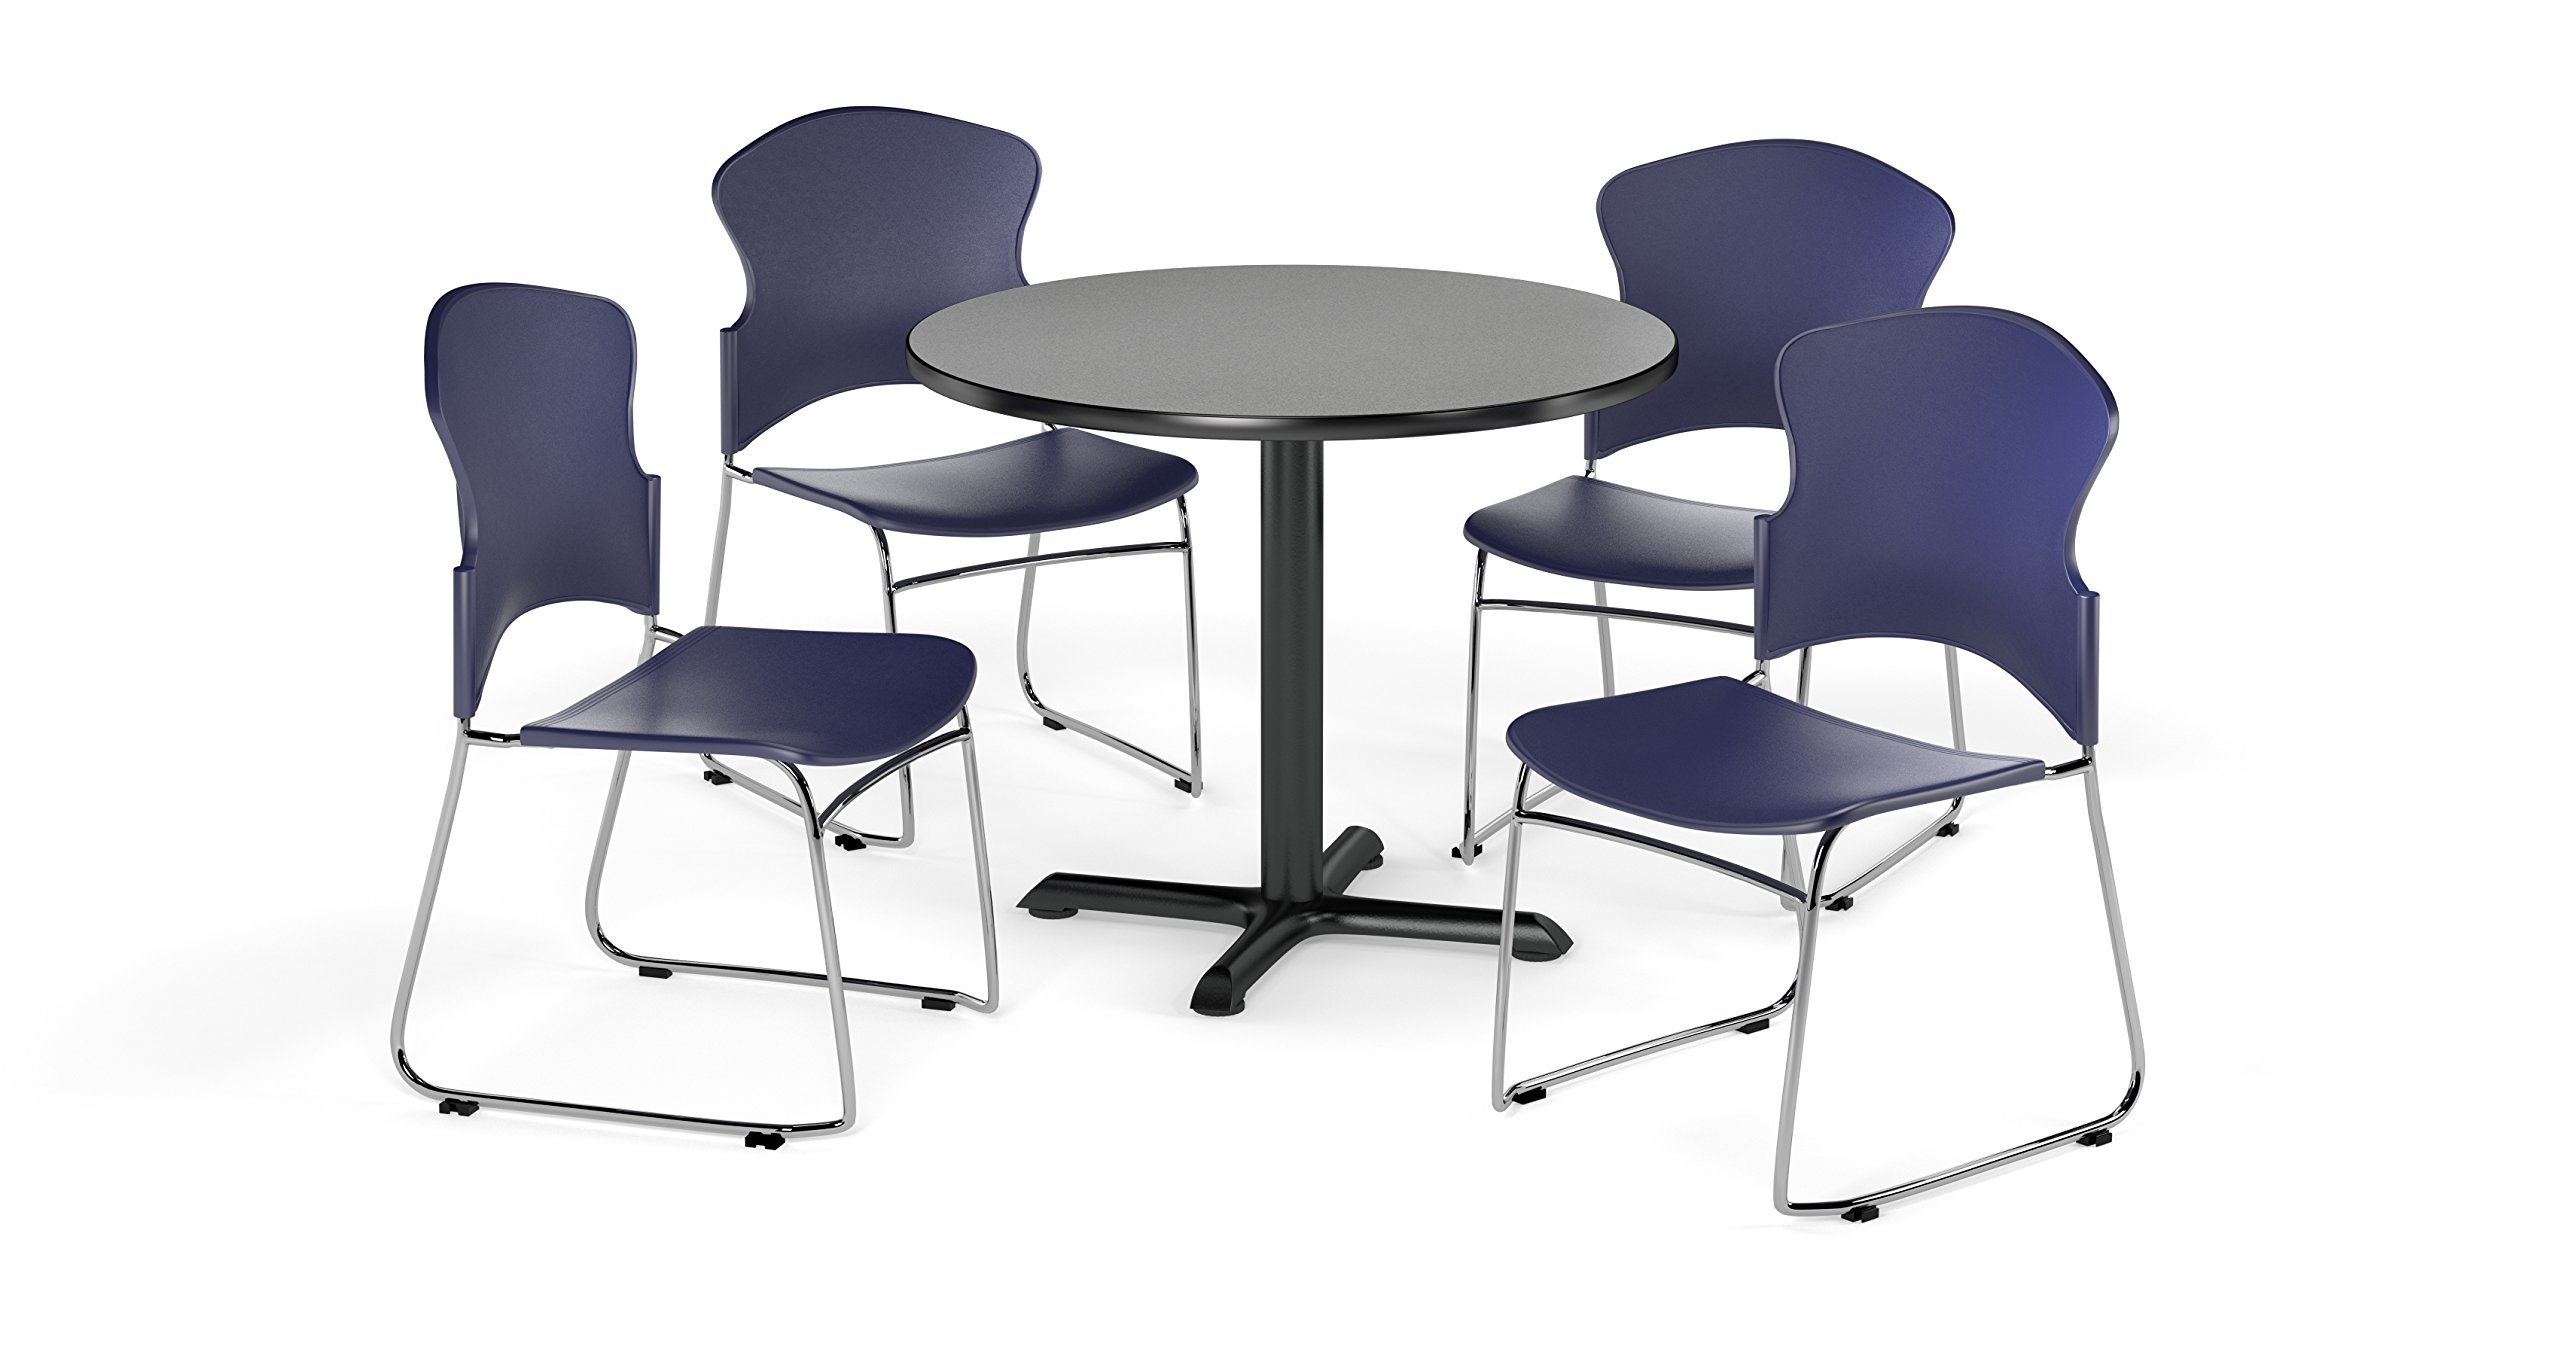 OFM PKG-BRK-033-0008 Breakroom Package, Gray Nebula Table/Navy Chair